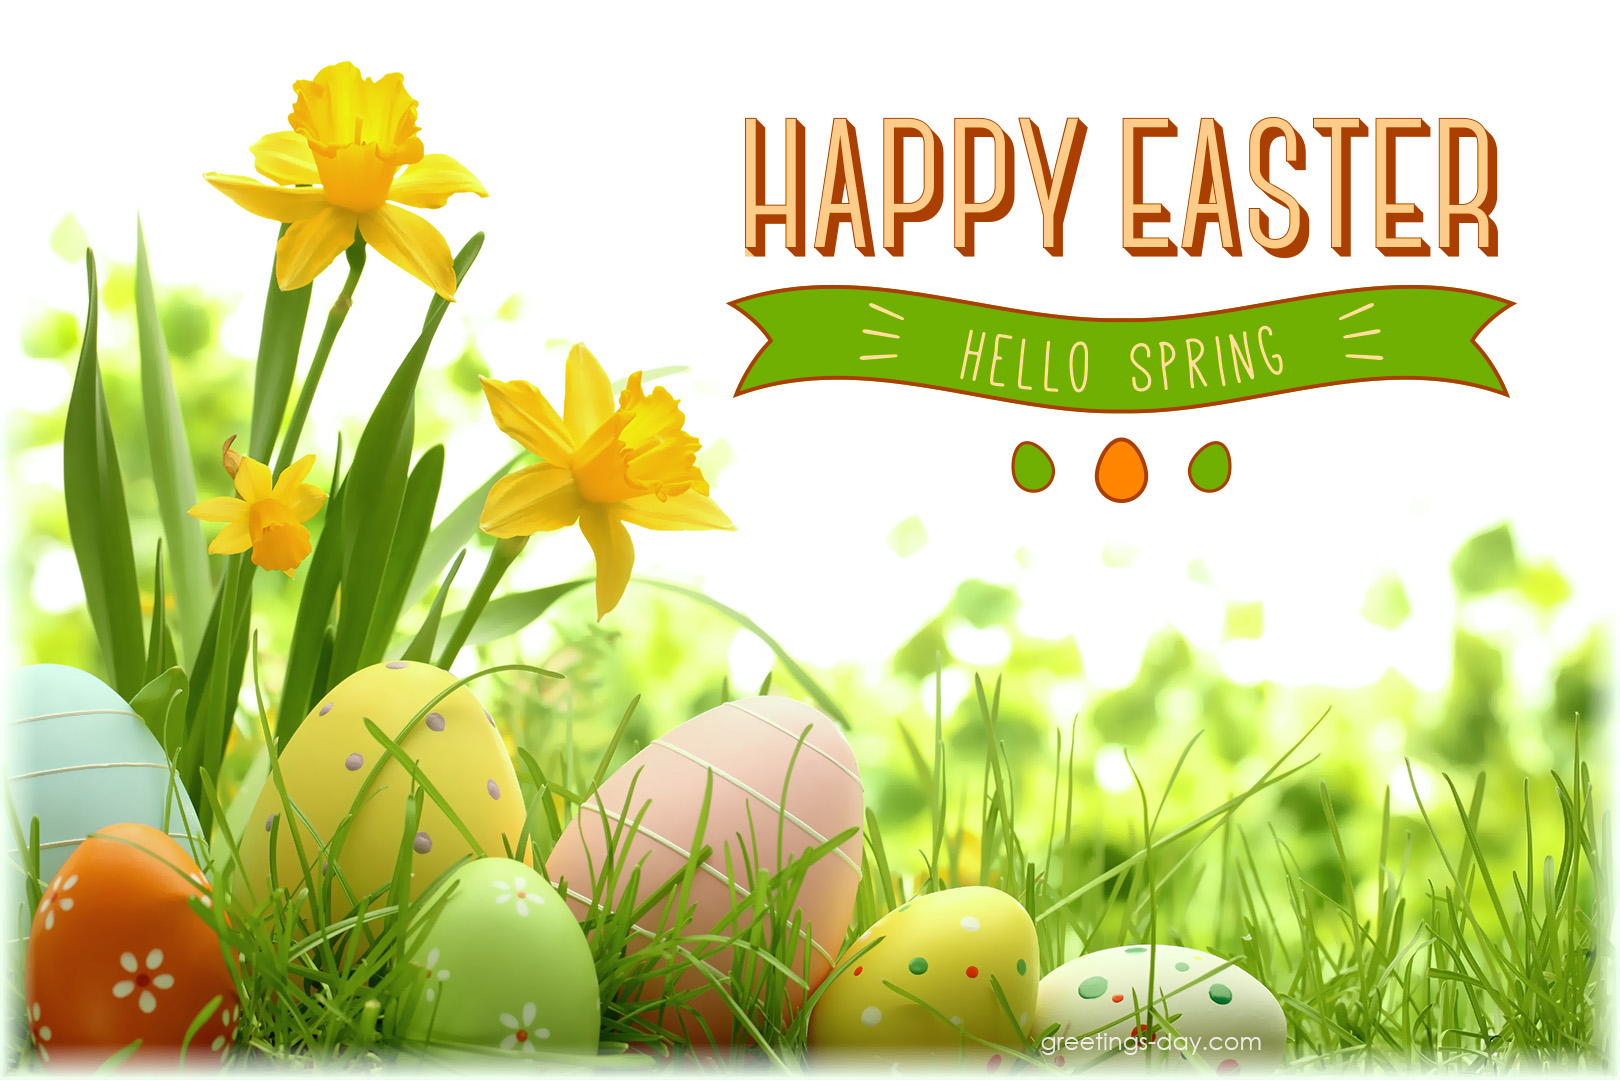 Http Greetings Day Com Happy Easter Day 2016 Greetings Card Html